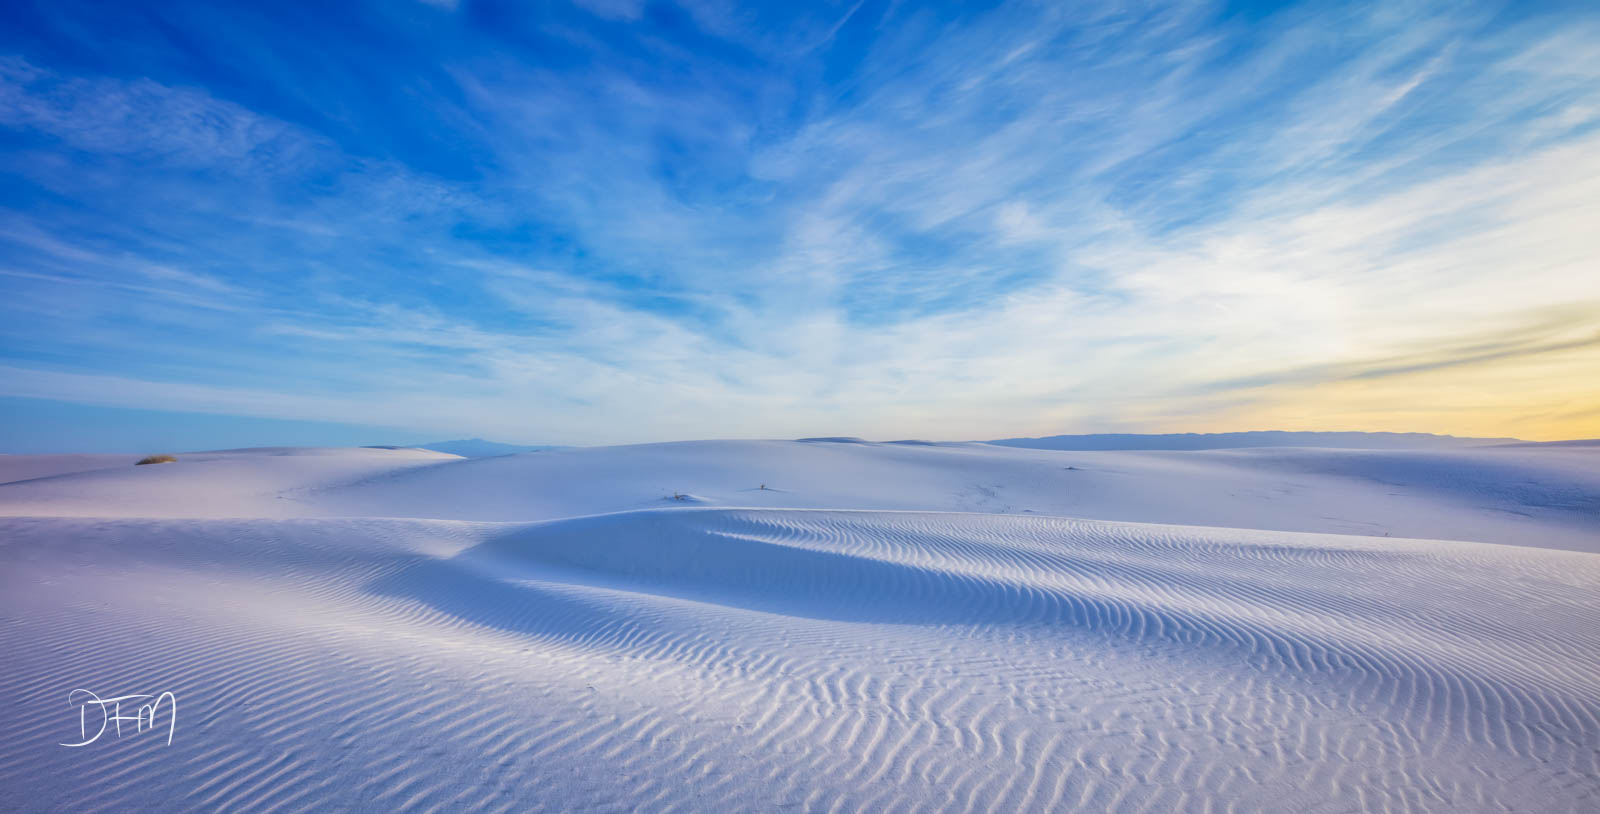 Sunrise on the White Sands National Park New Mexico. This place is way beautiful!